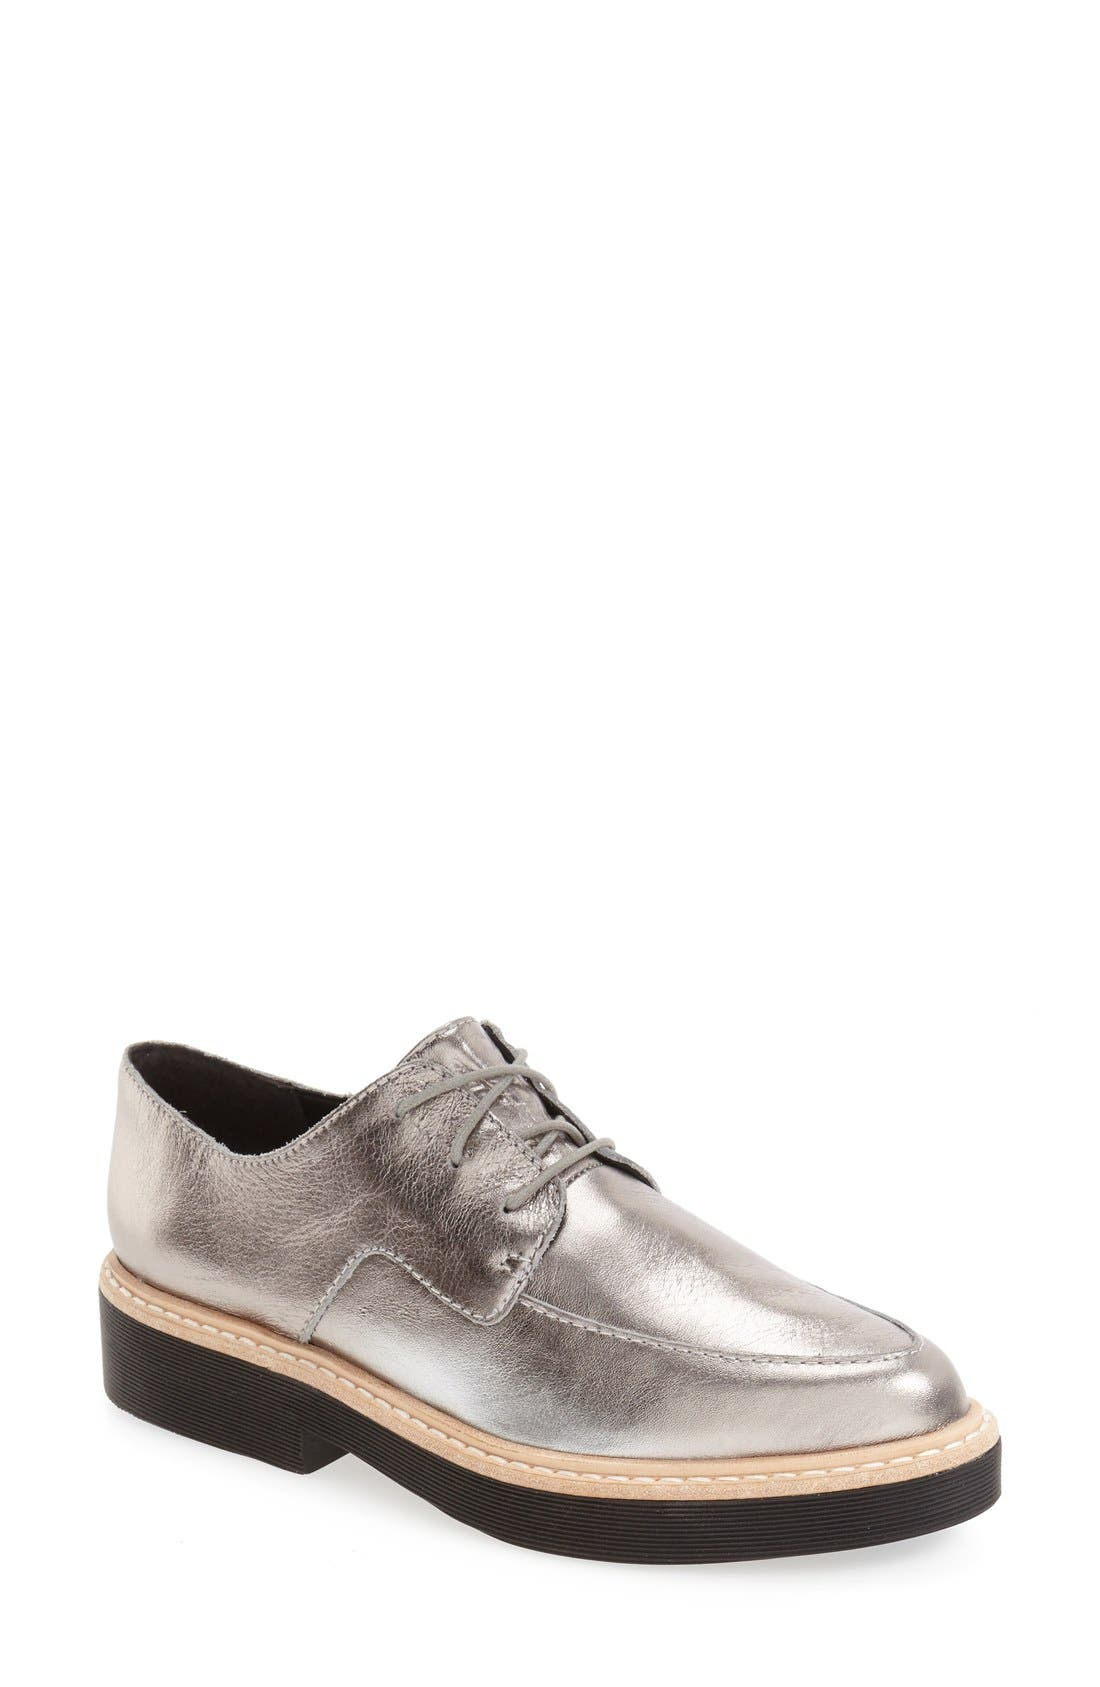 Alternate Image 1 Selected - M4D3 'France' Lace-Up Oxford (Women)